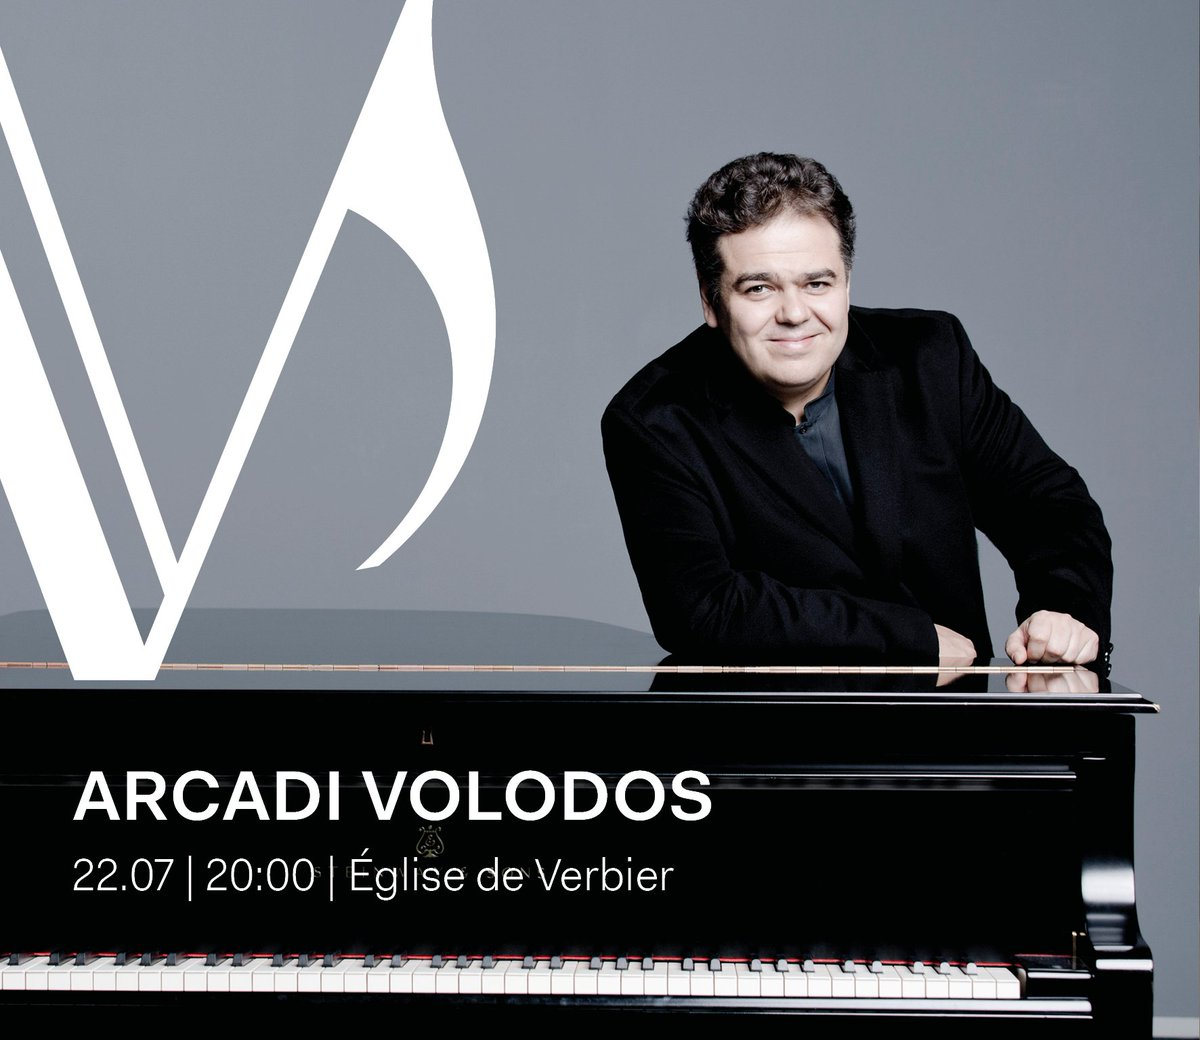 Two legends of classical music are back at the Verbier Festival. You will hear Arcadi Volodos in a recital programme with his own arrangements on 22 July  http:// bit.ly/2SQ66XX  &nbsp;  . Jian Wang will perform for the second Rencontres Inédites on 23 July   http:// bit.ly/2ty4MKp  &nbsp;  <br>http://pic.twitter.com/BLlEX7QVek